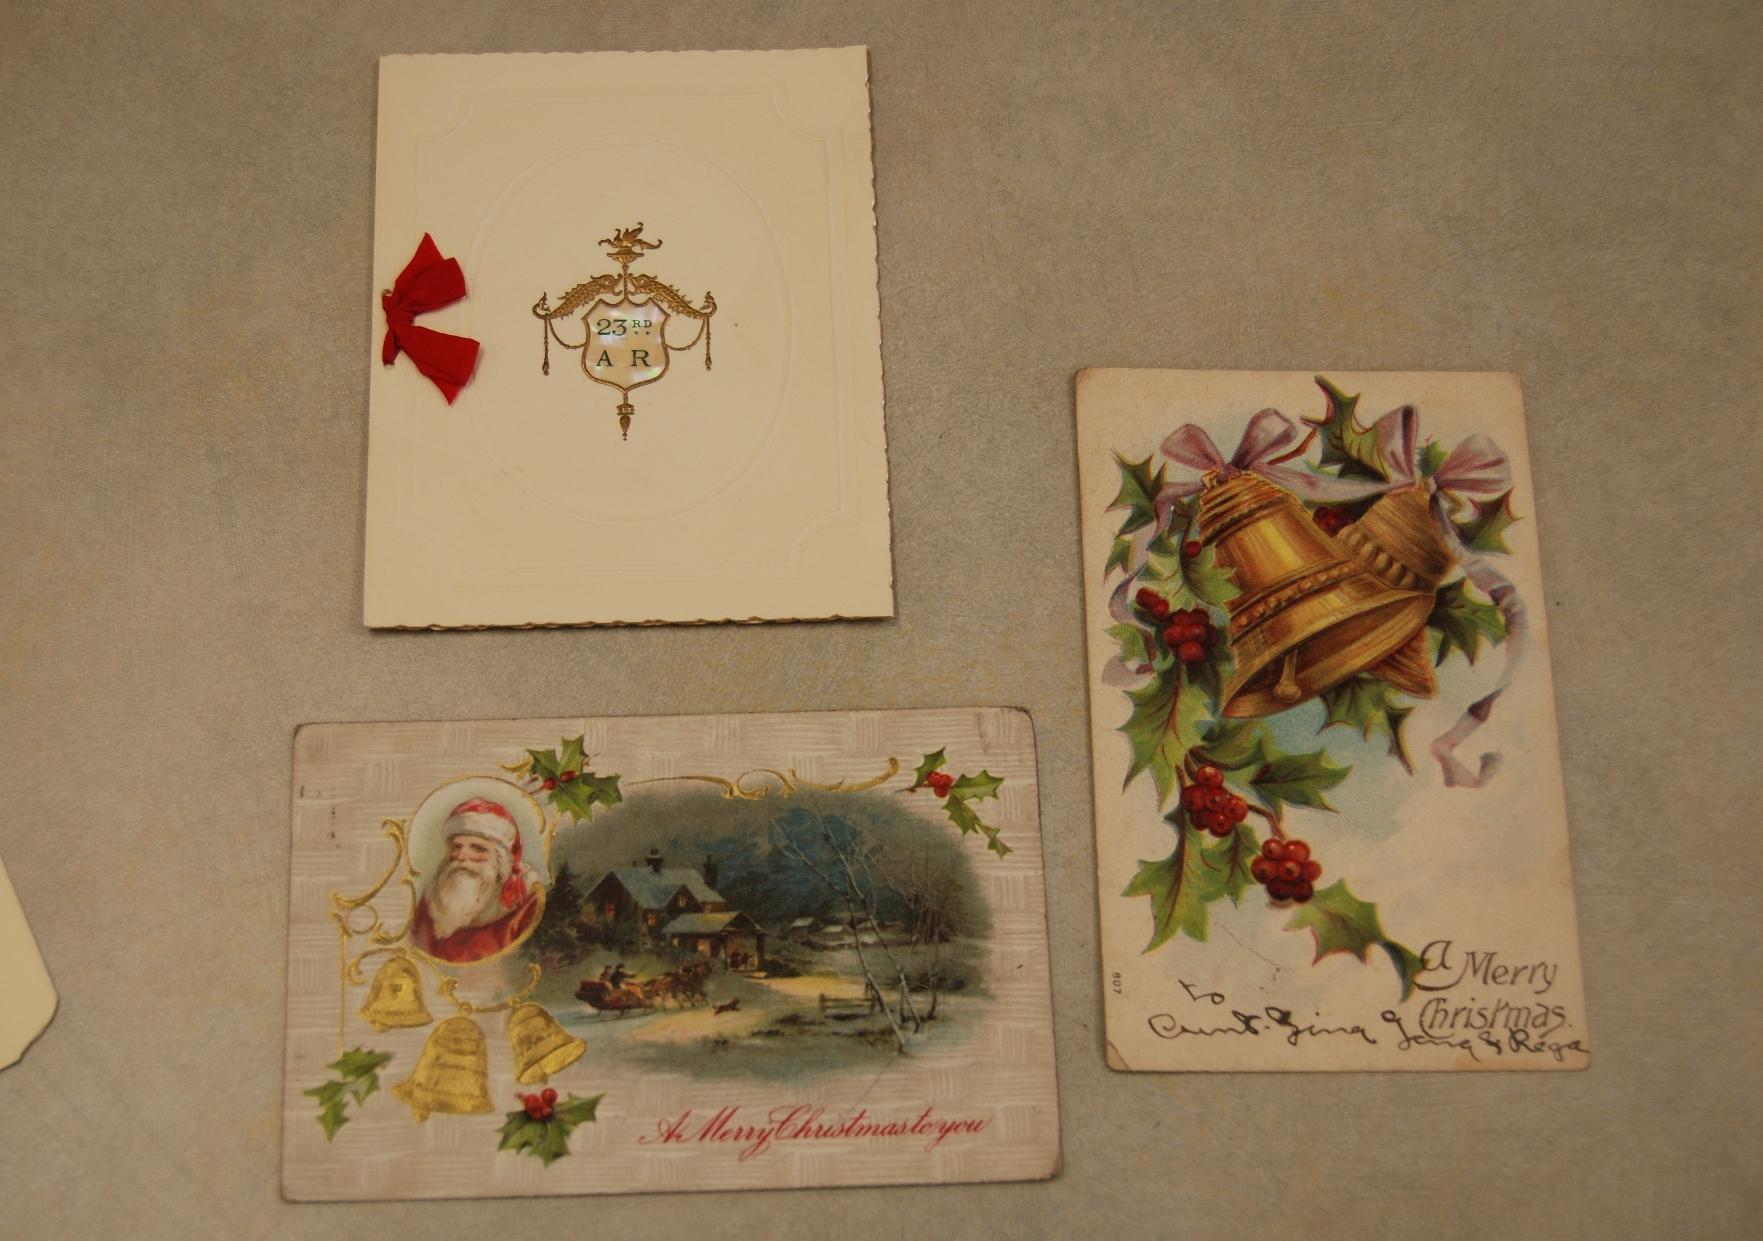 Turn of the century Christmas cards.